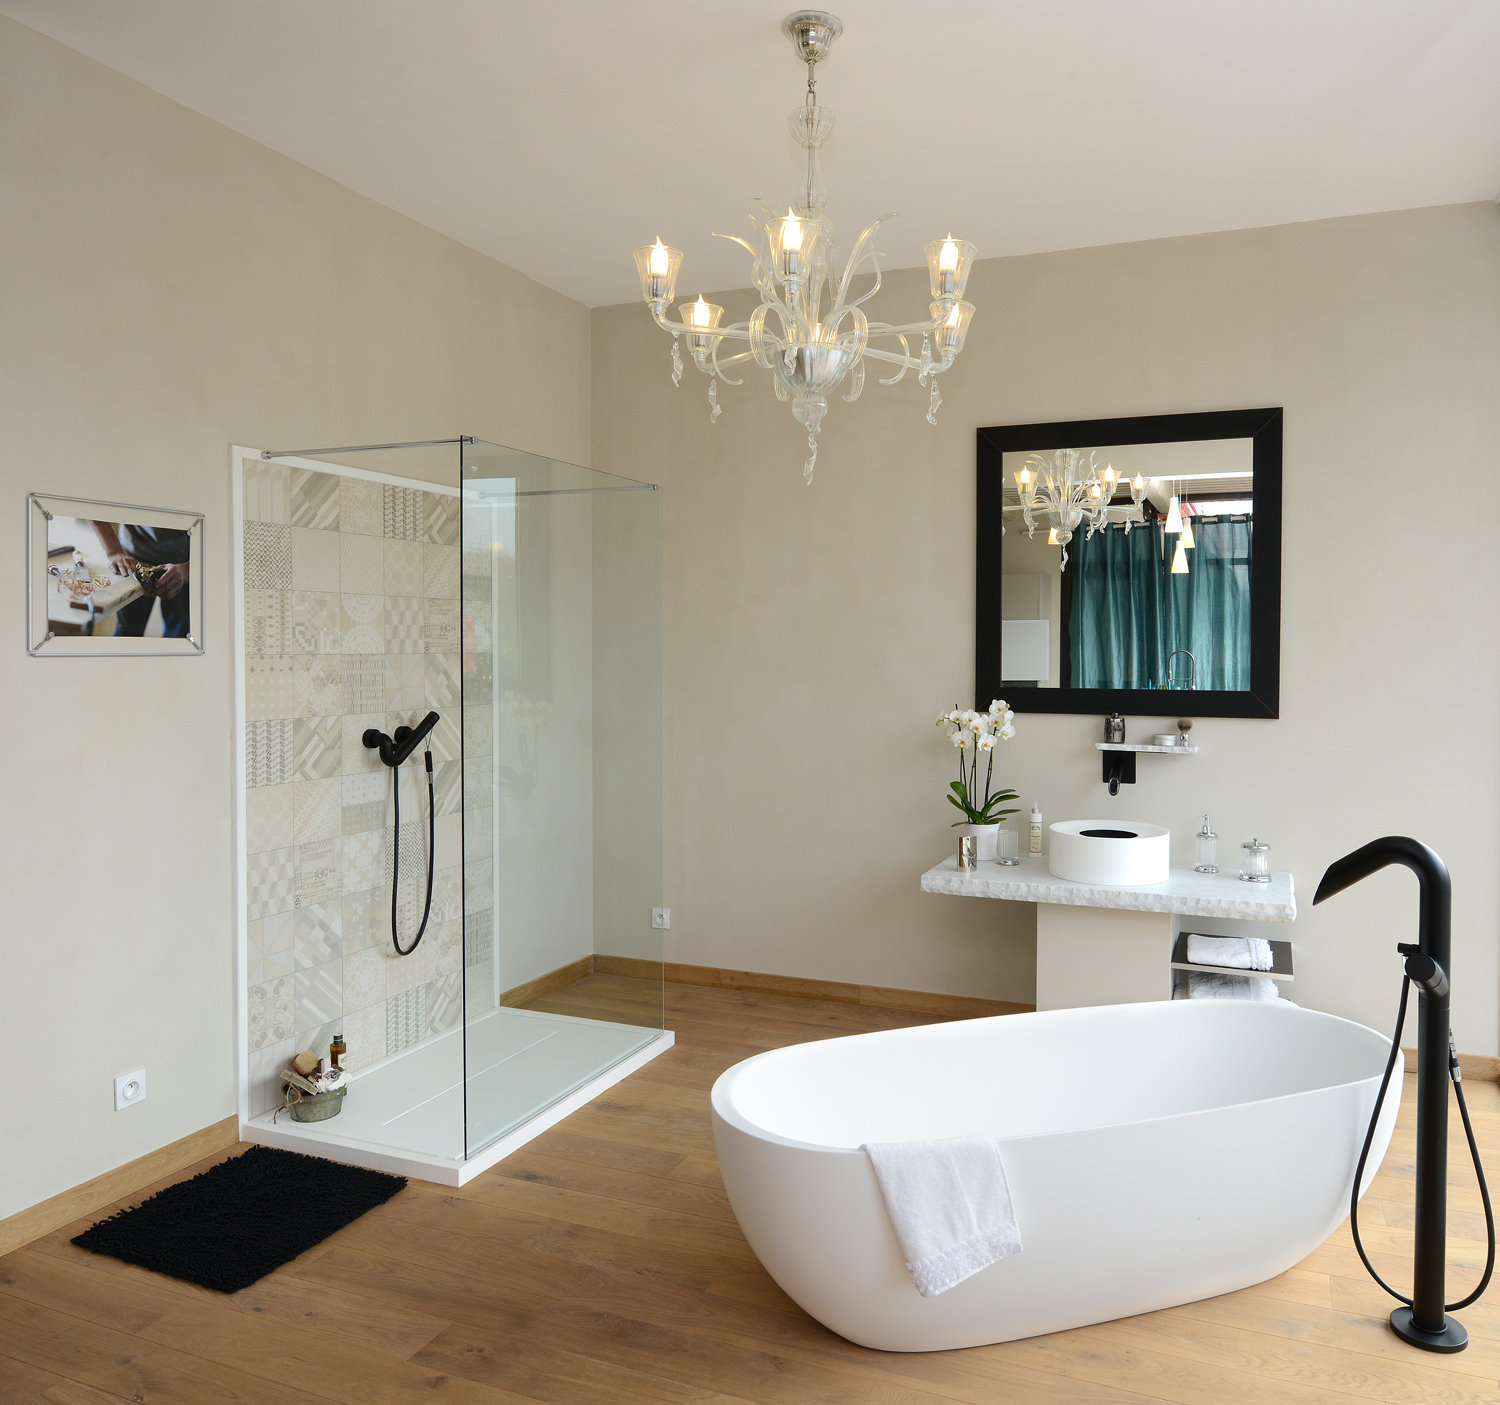 LUBERON CREATION - Salle de bain